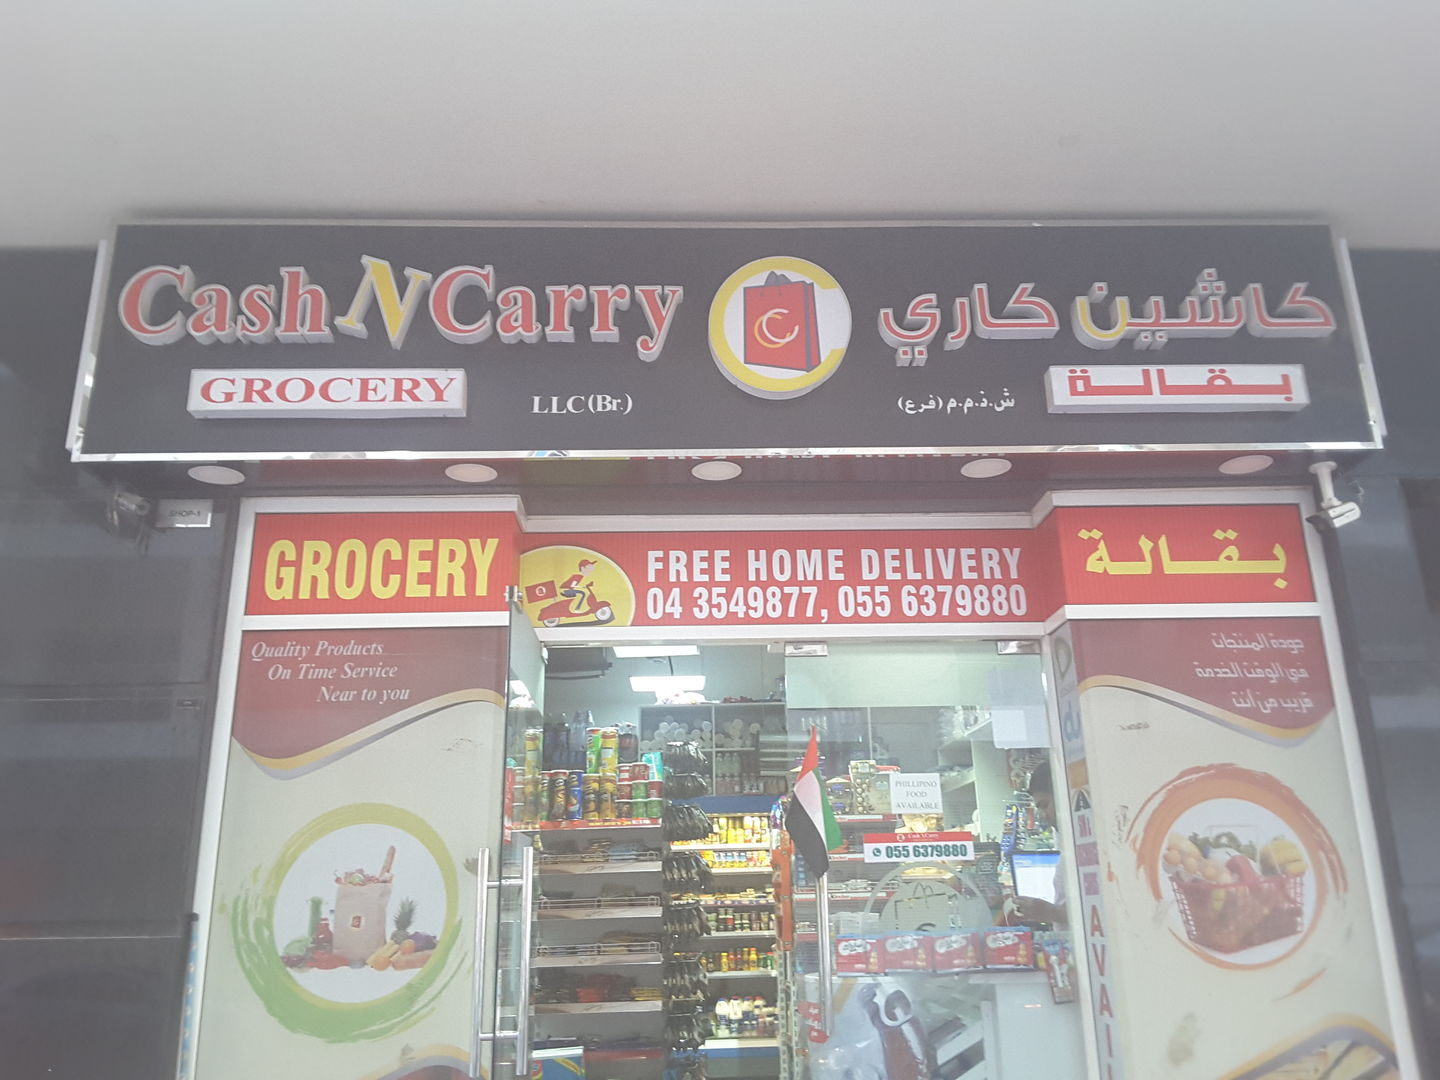 HiDubai-business-cash-n-carry-grocery-food-beverage-supermarkets-hypermarkets-grocery-stores-al-barsha-1-dubai-5